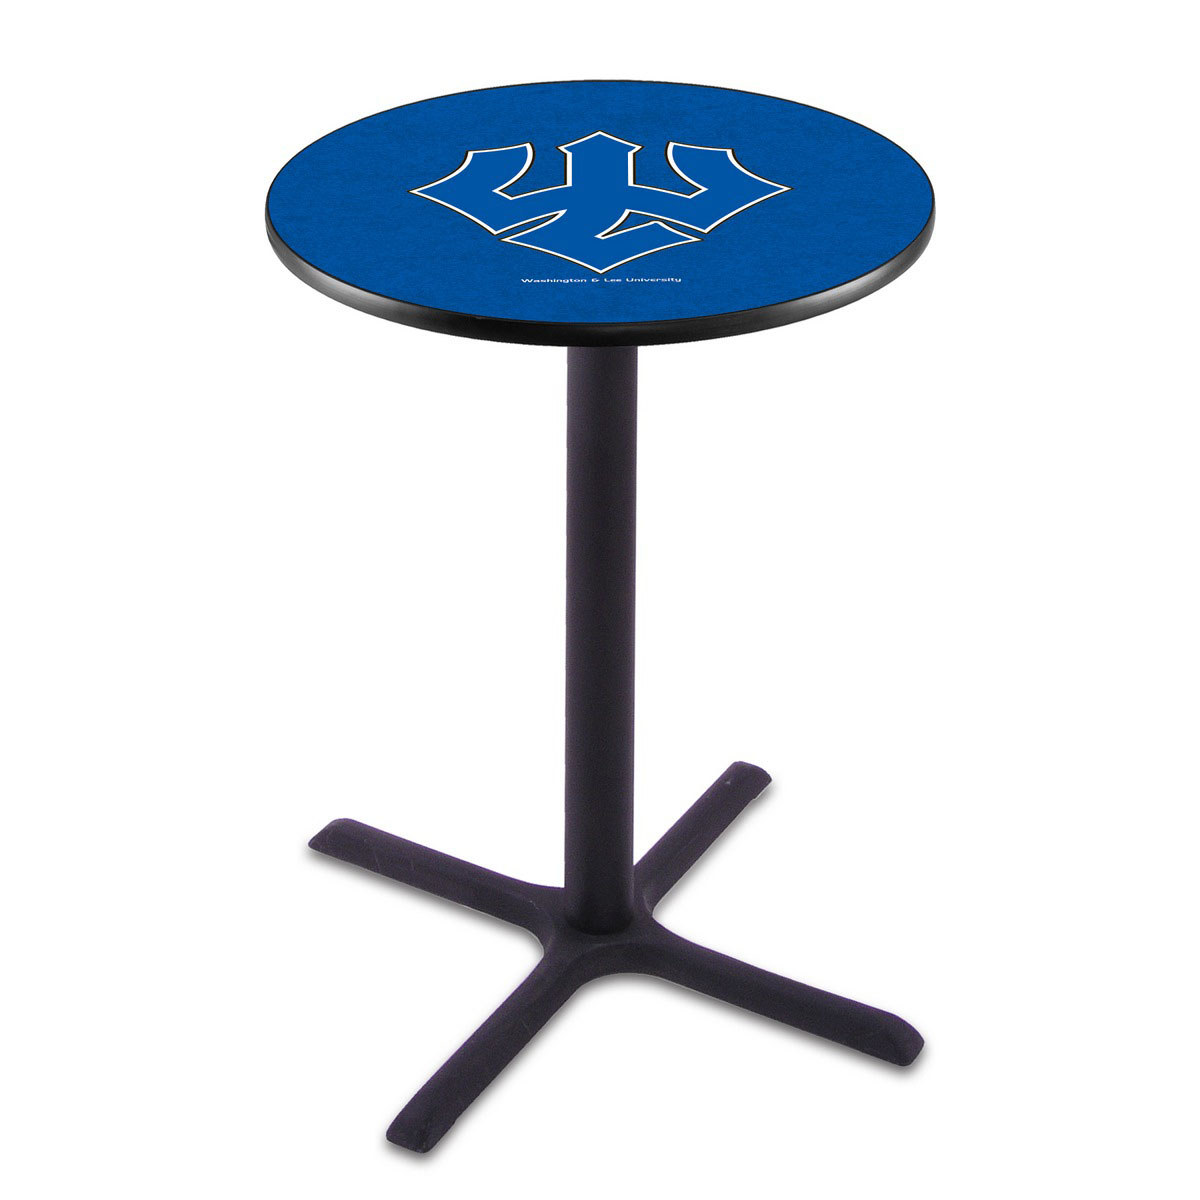 Unique Washington Lee Wrinkle Pub Table Product Photo